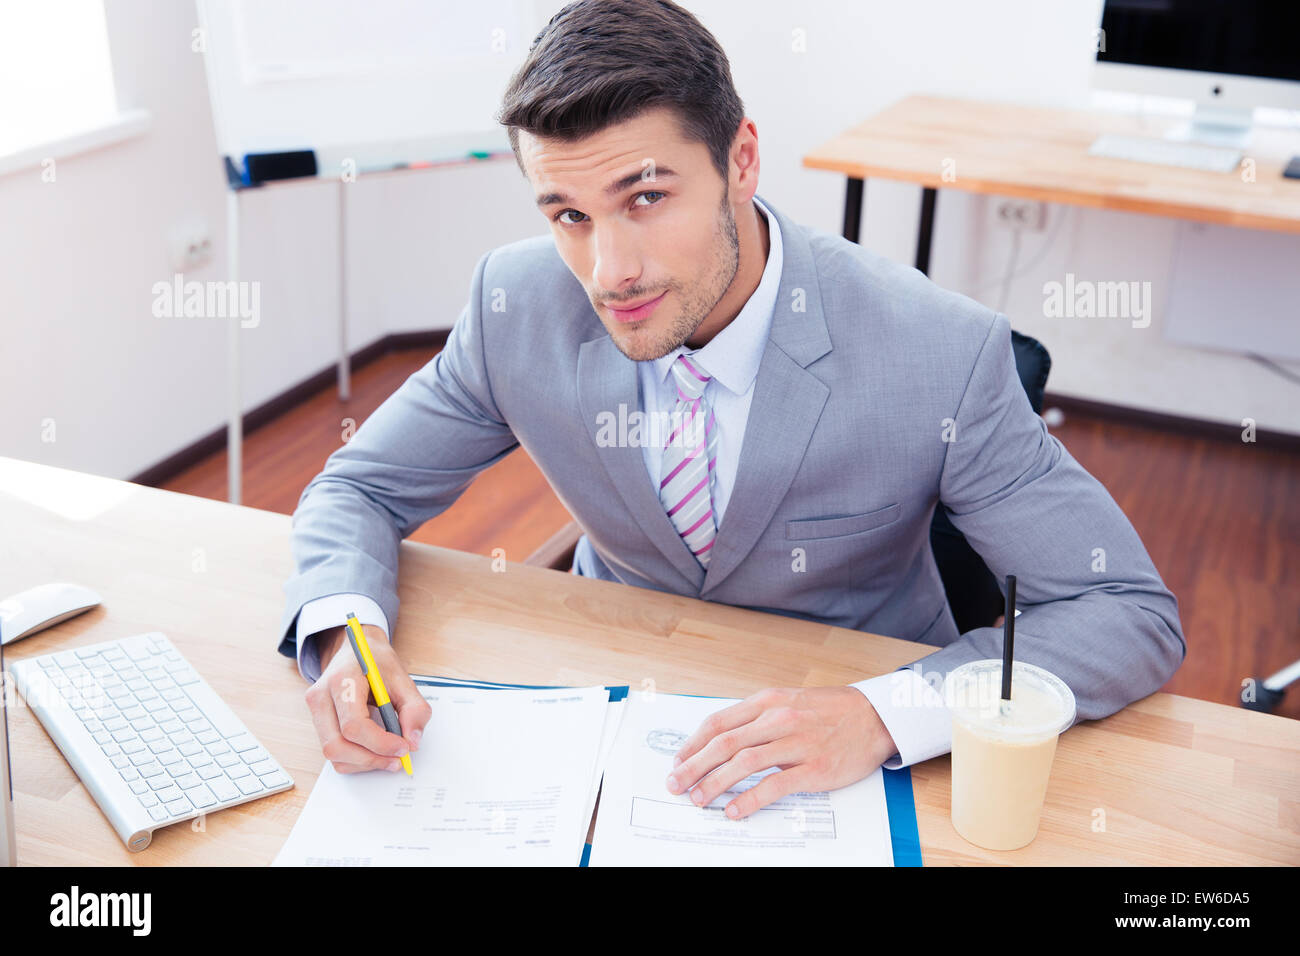 Handsome businessman signing document in office and looking at camera - Stock Image